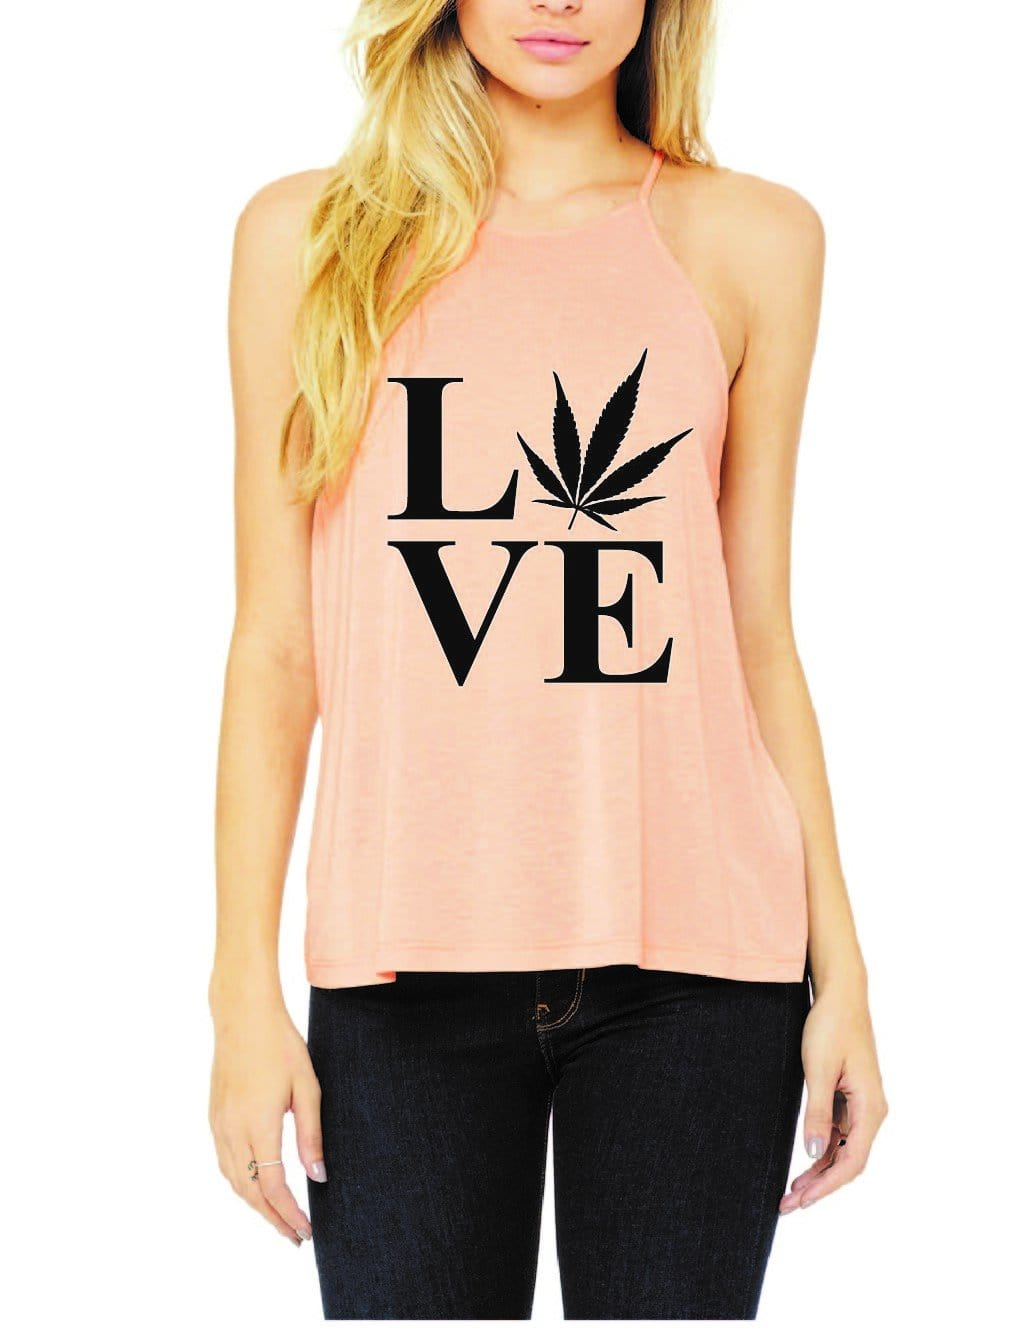 CannaLove Tank - think-hemp-chicks